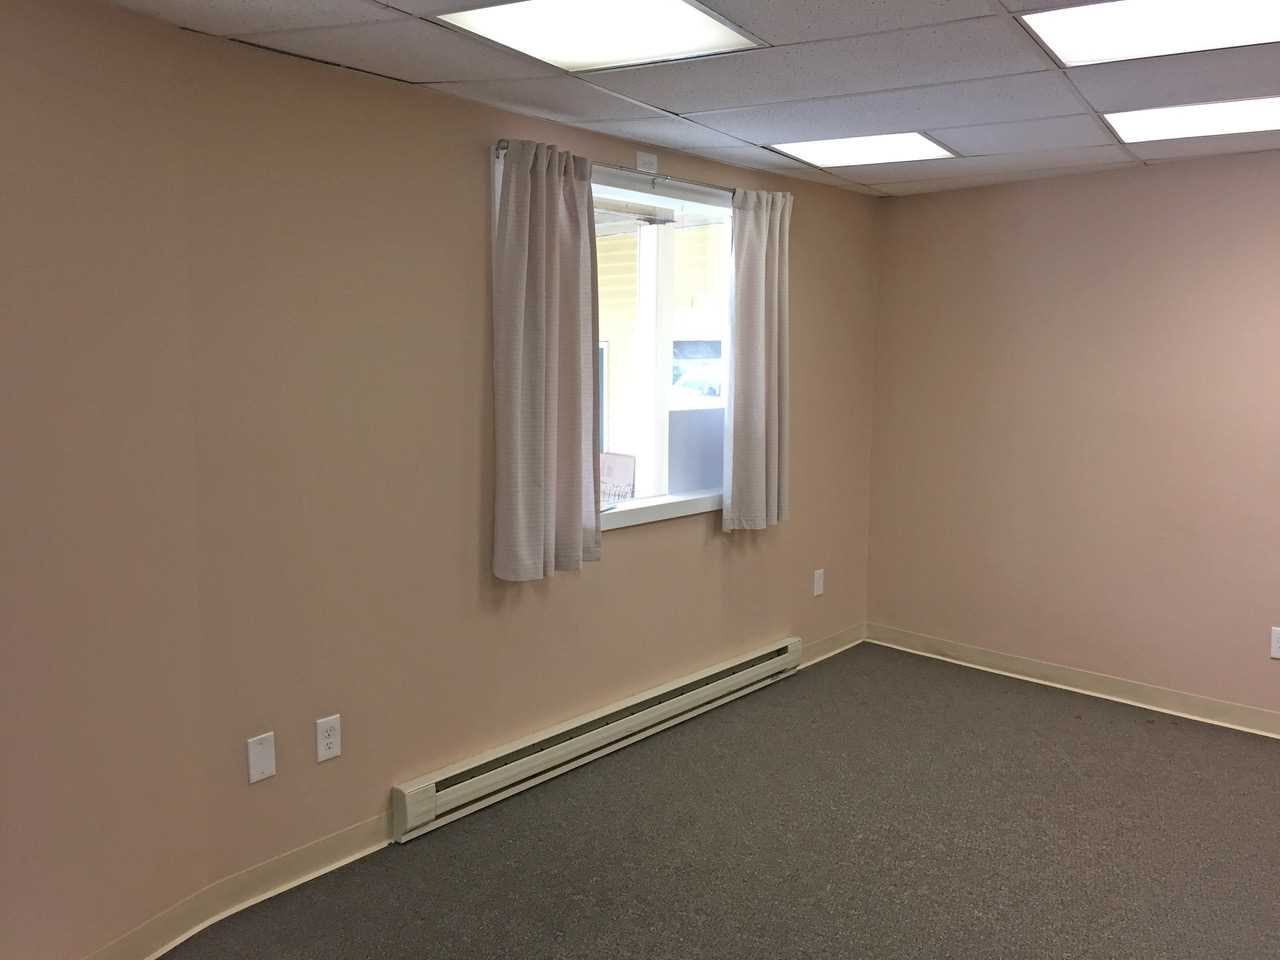 Additional photo for property listing at 8 OLD NORTH ROAD 8 OLD NORTH ROAD Amenia, New York 12501 United States